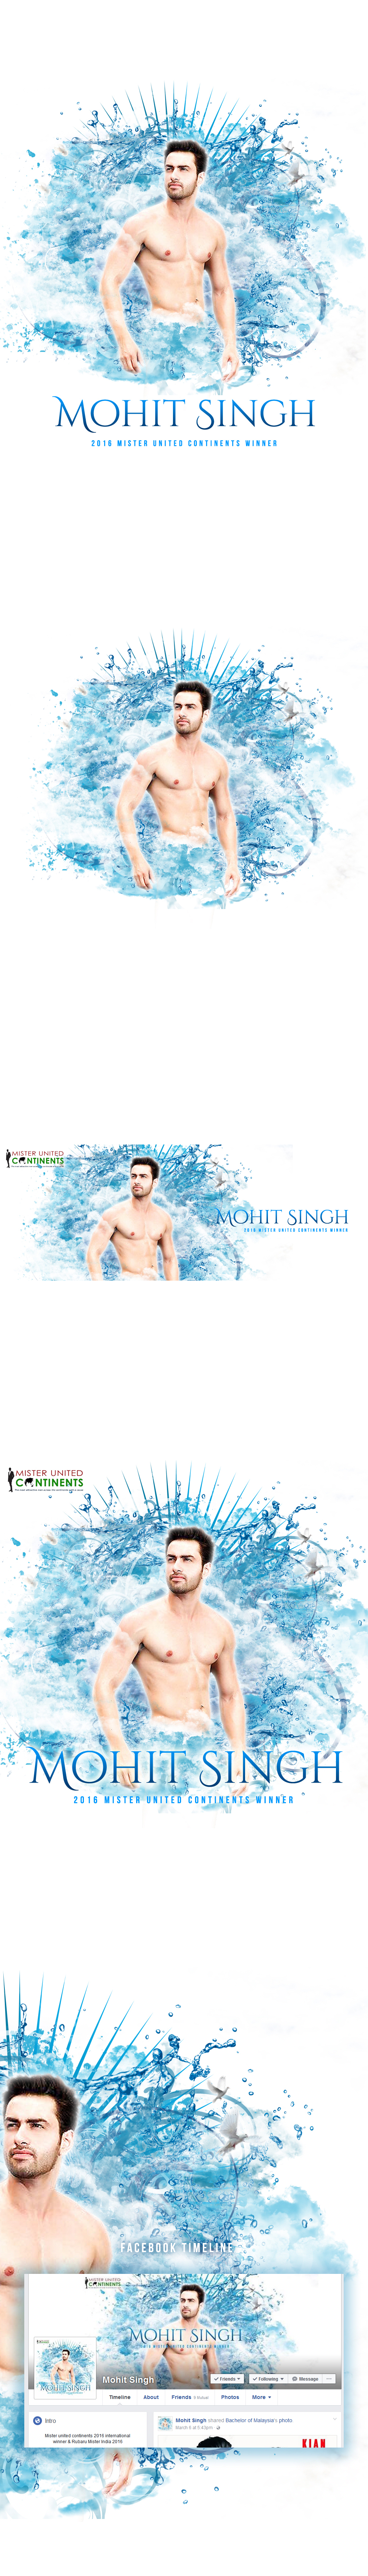 MOHIT SINGH // 2016 Mister United Continents  // client: Mohit Singh //  location: New Delhi, India //  date released: feb 2017